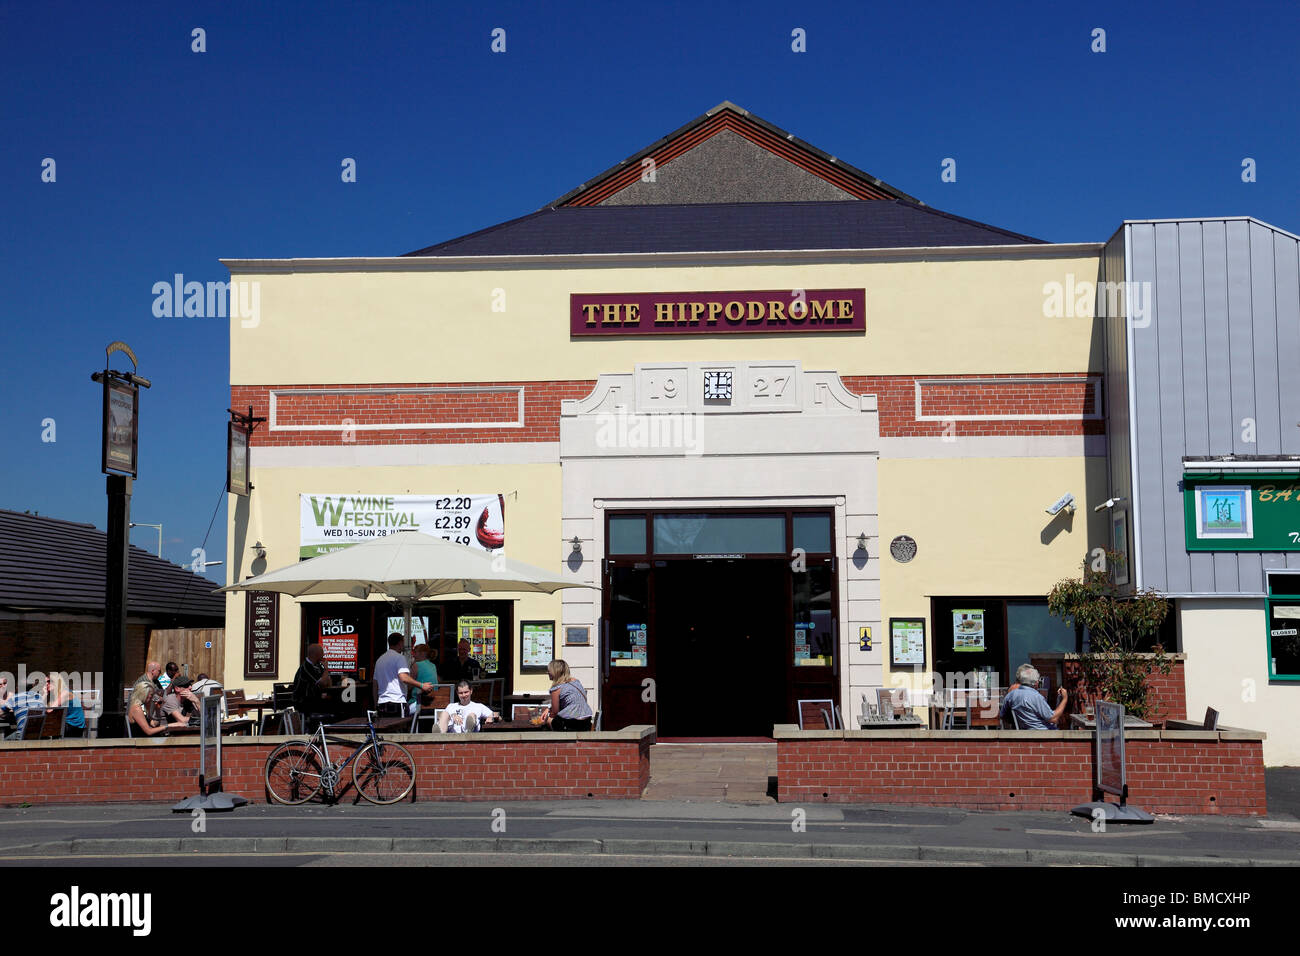 Wetherspoons pub, Market Drayton, Shropshire is in the old Hippodrome cinema built in 1927 - Stock Image